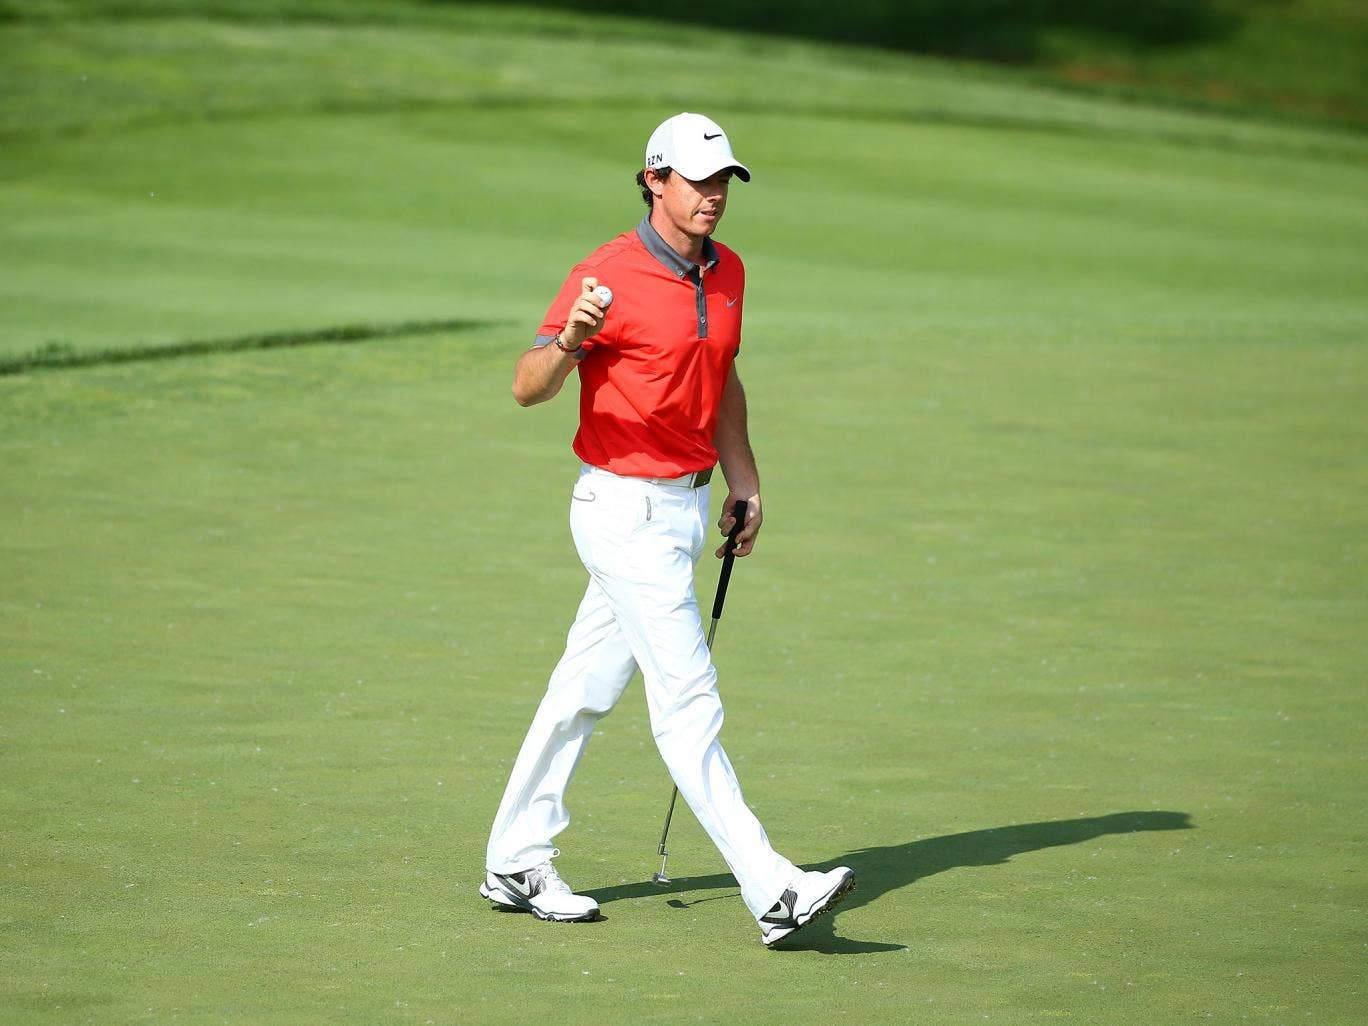 Rory McIlroy leads the field after the opening round of the Jack Nicklaus Memorial Tournament in Ohio